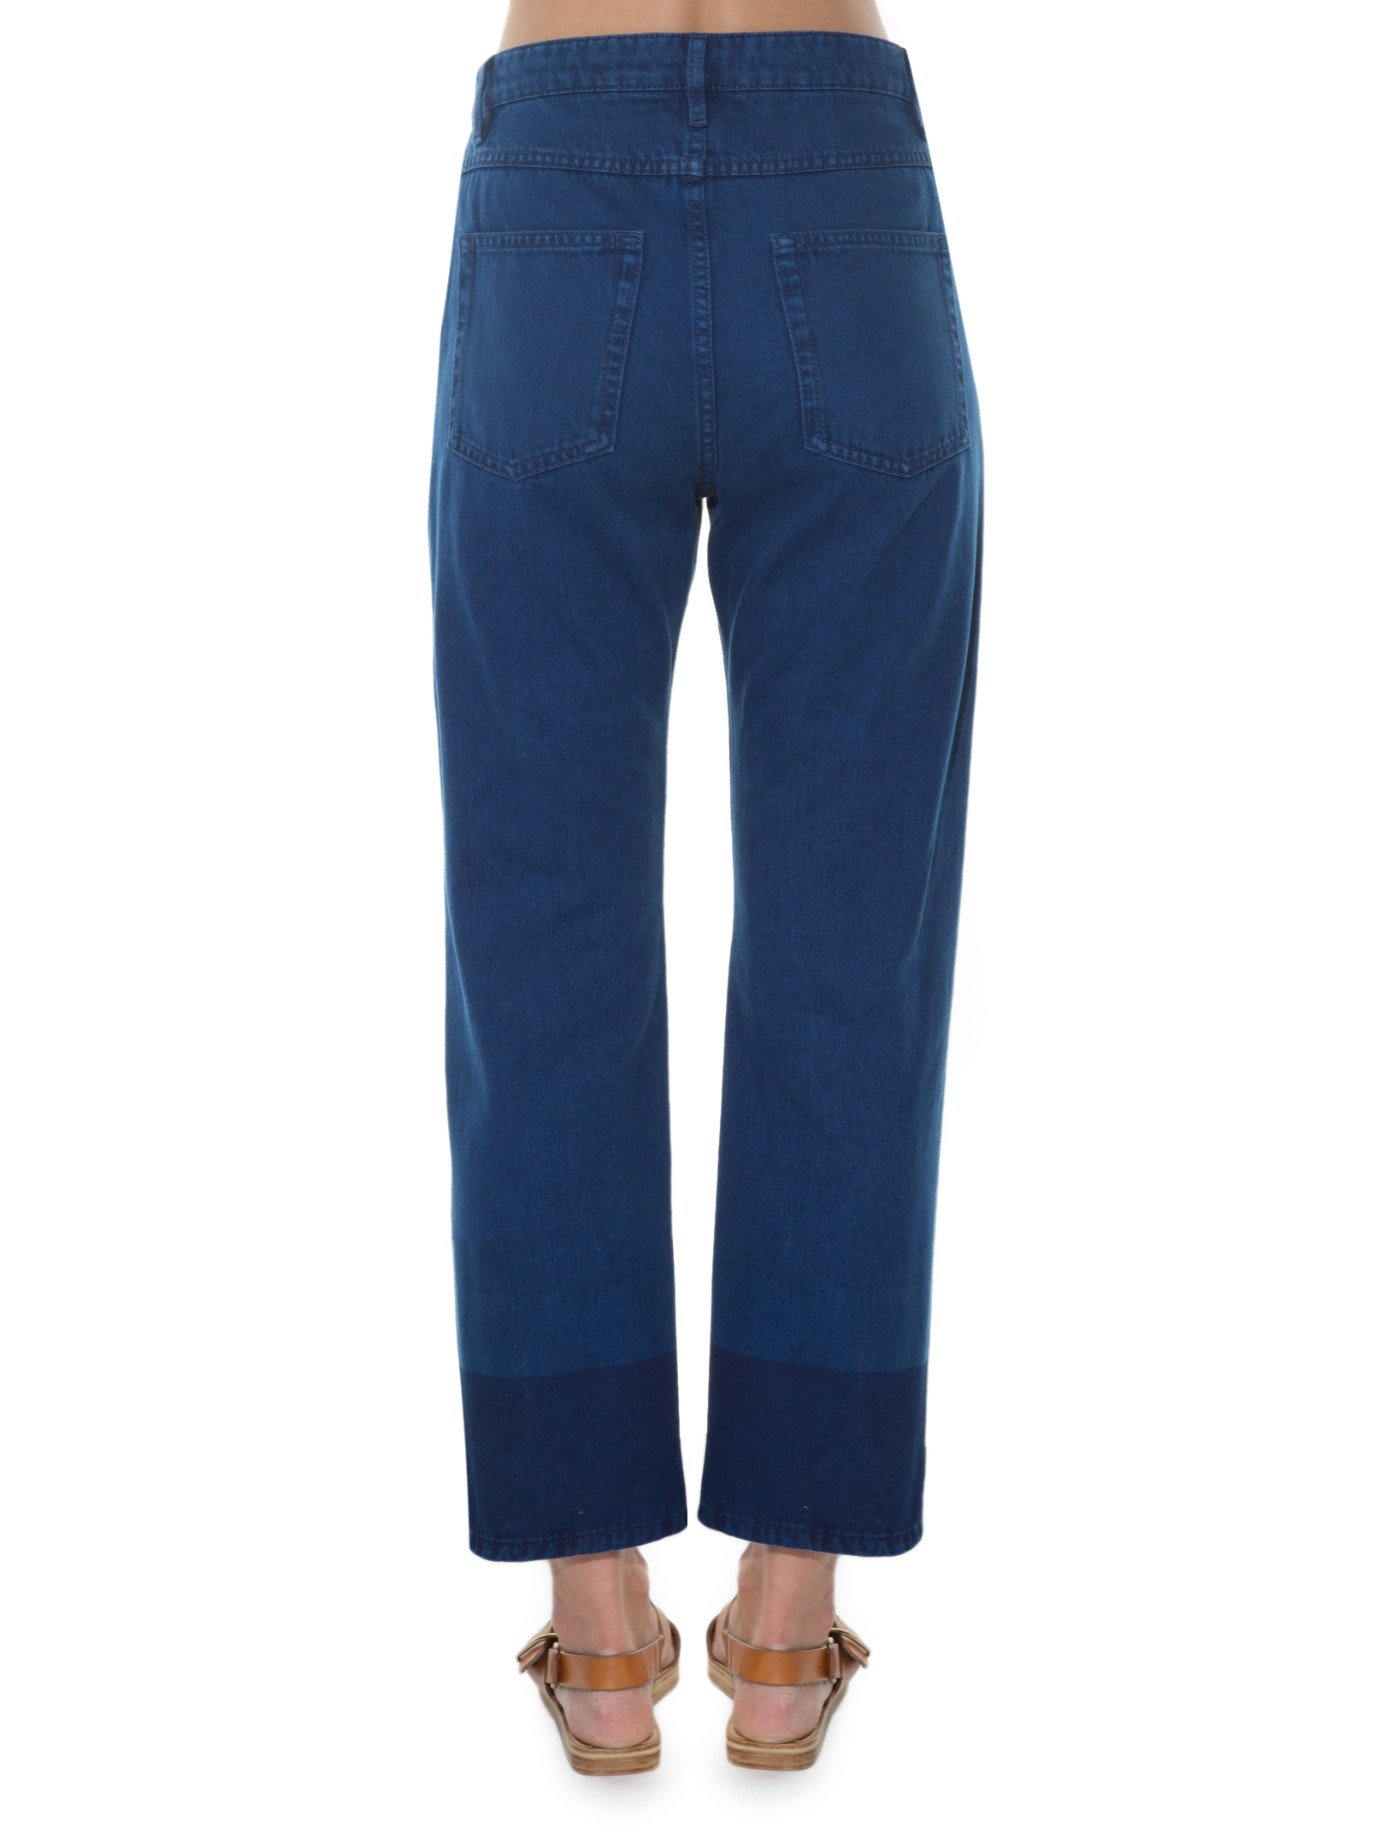 cropped straight-leg jeans - Blue Isabel Marant Clearance Good Selling All Size Free Shipping Fast Delivery From China Cheap Price GysNWk0274